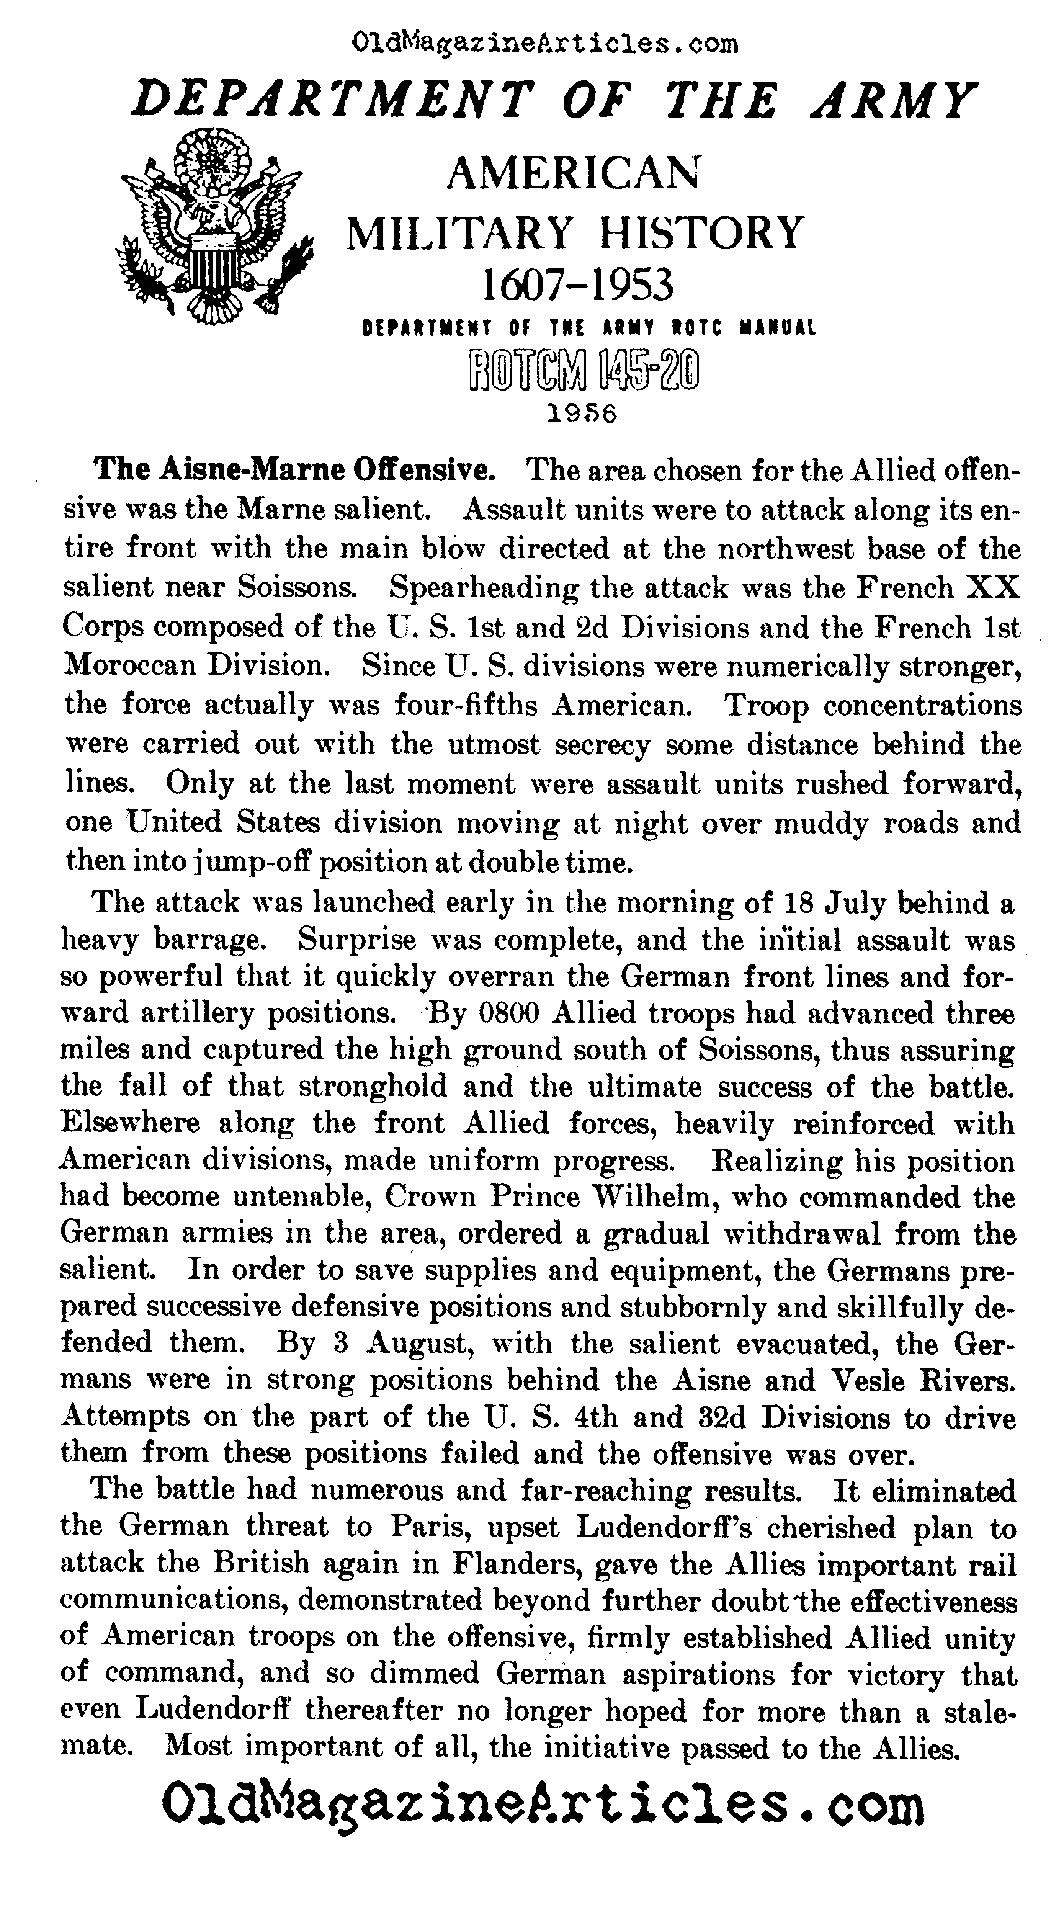 Summing Up the Aisne-Marne Offensive (Dept. of the Army, 1956)